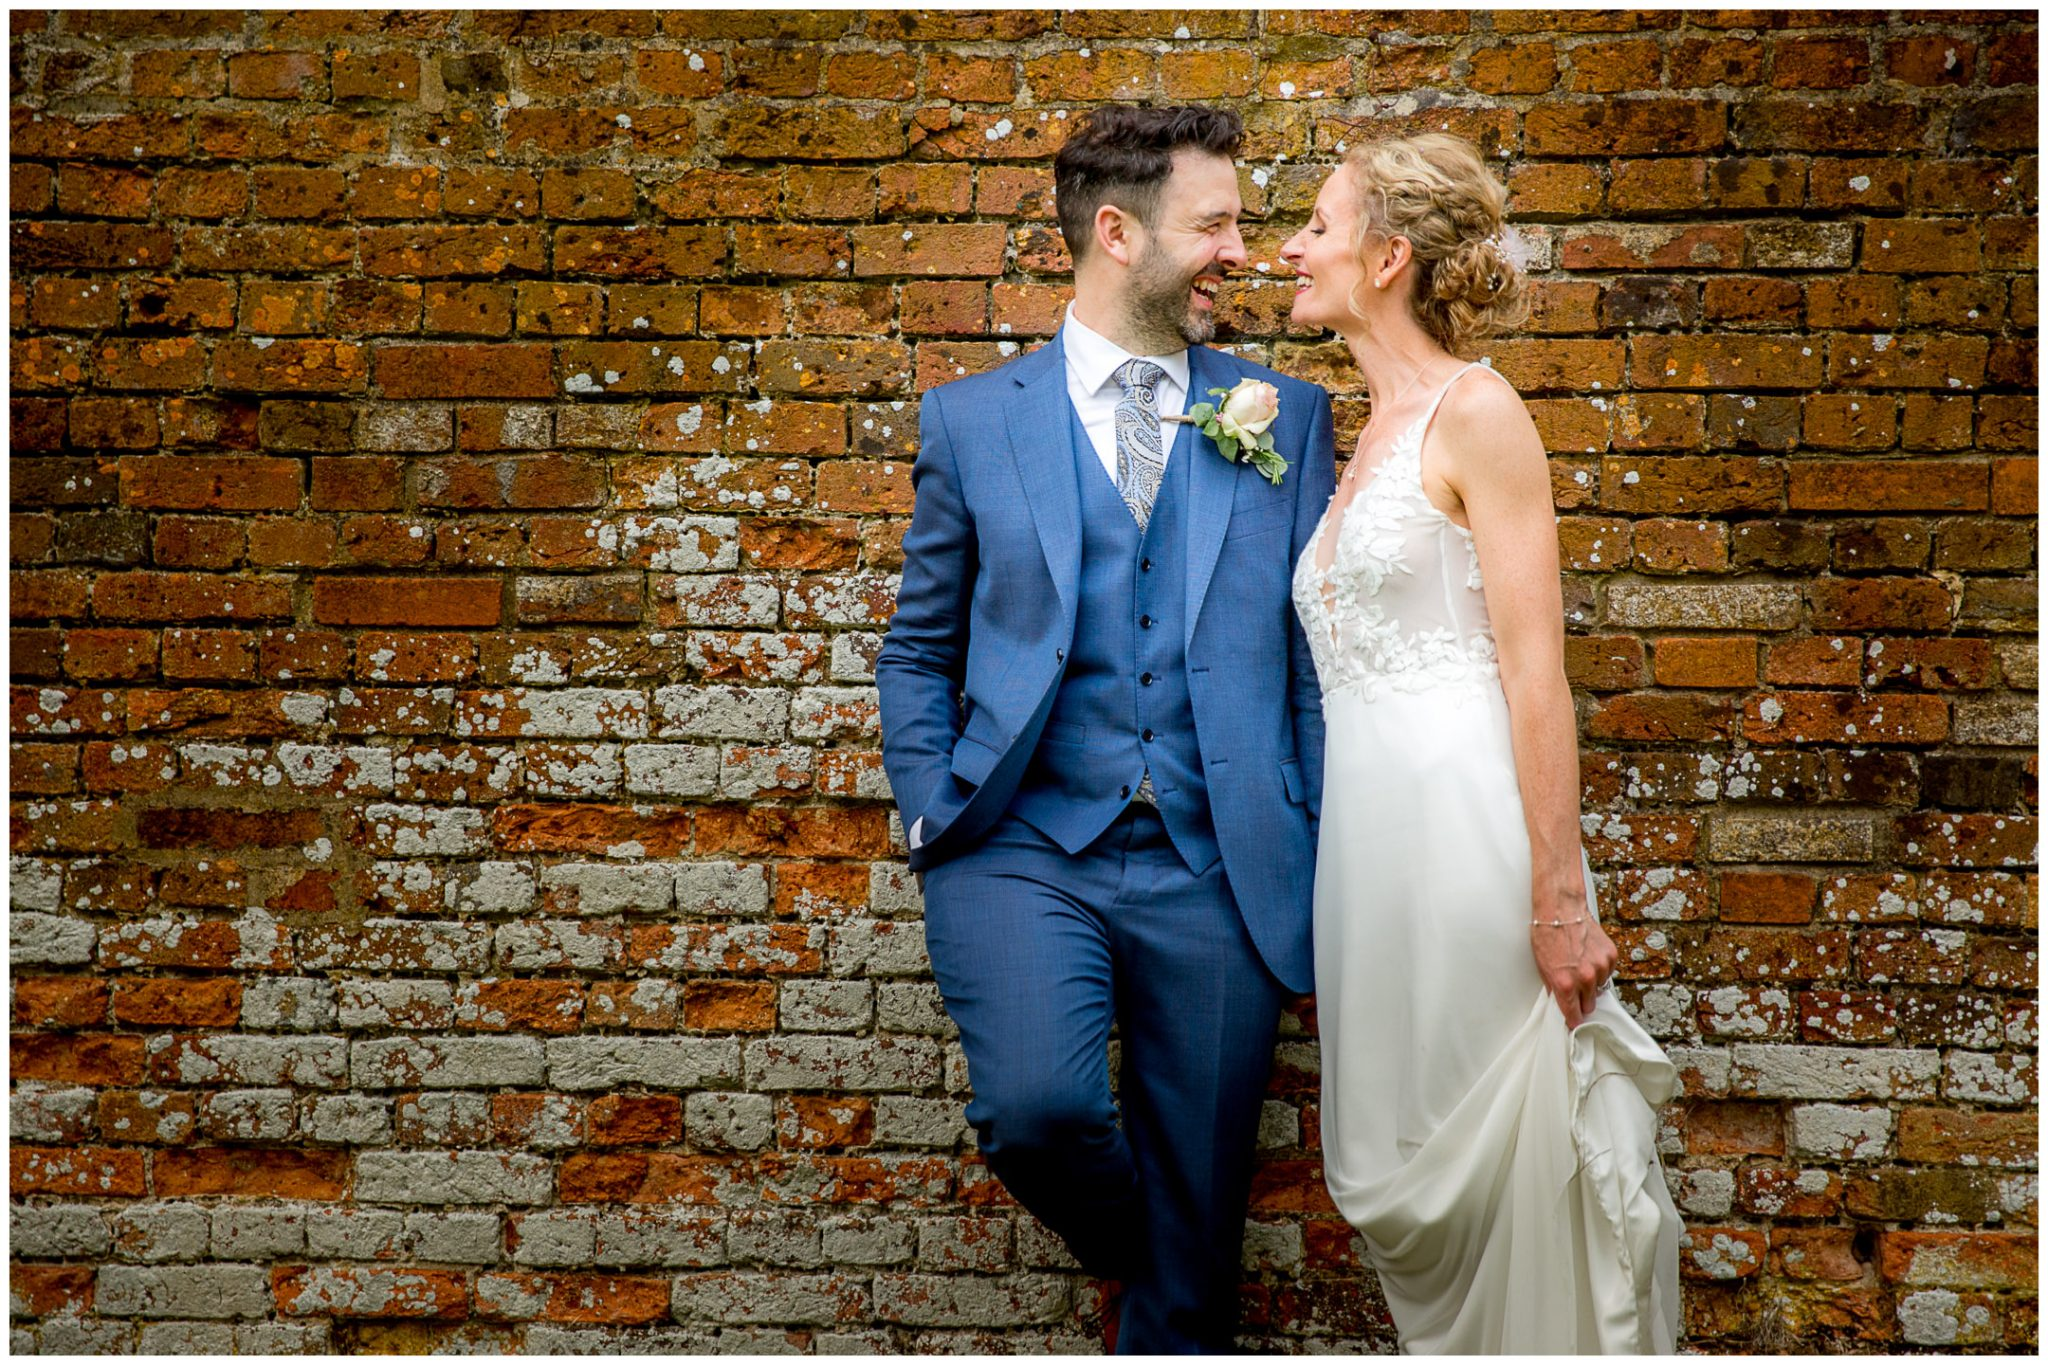 Colour portrait of wedding couple against brick textures